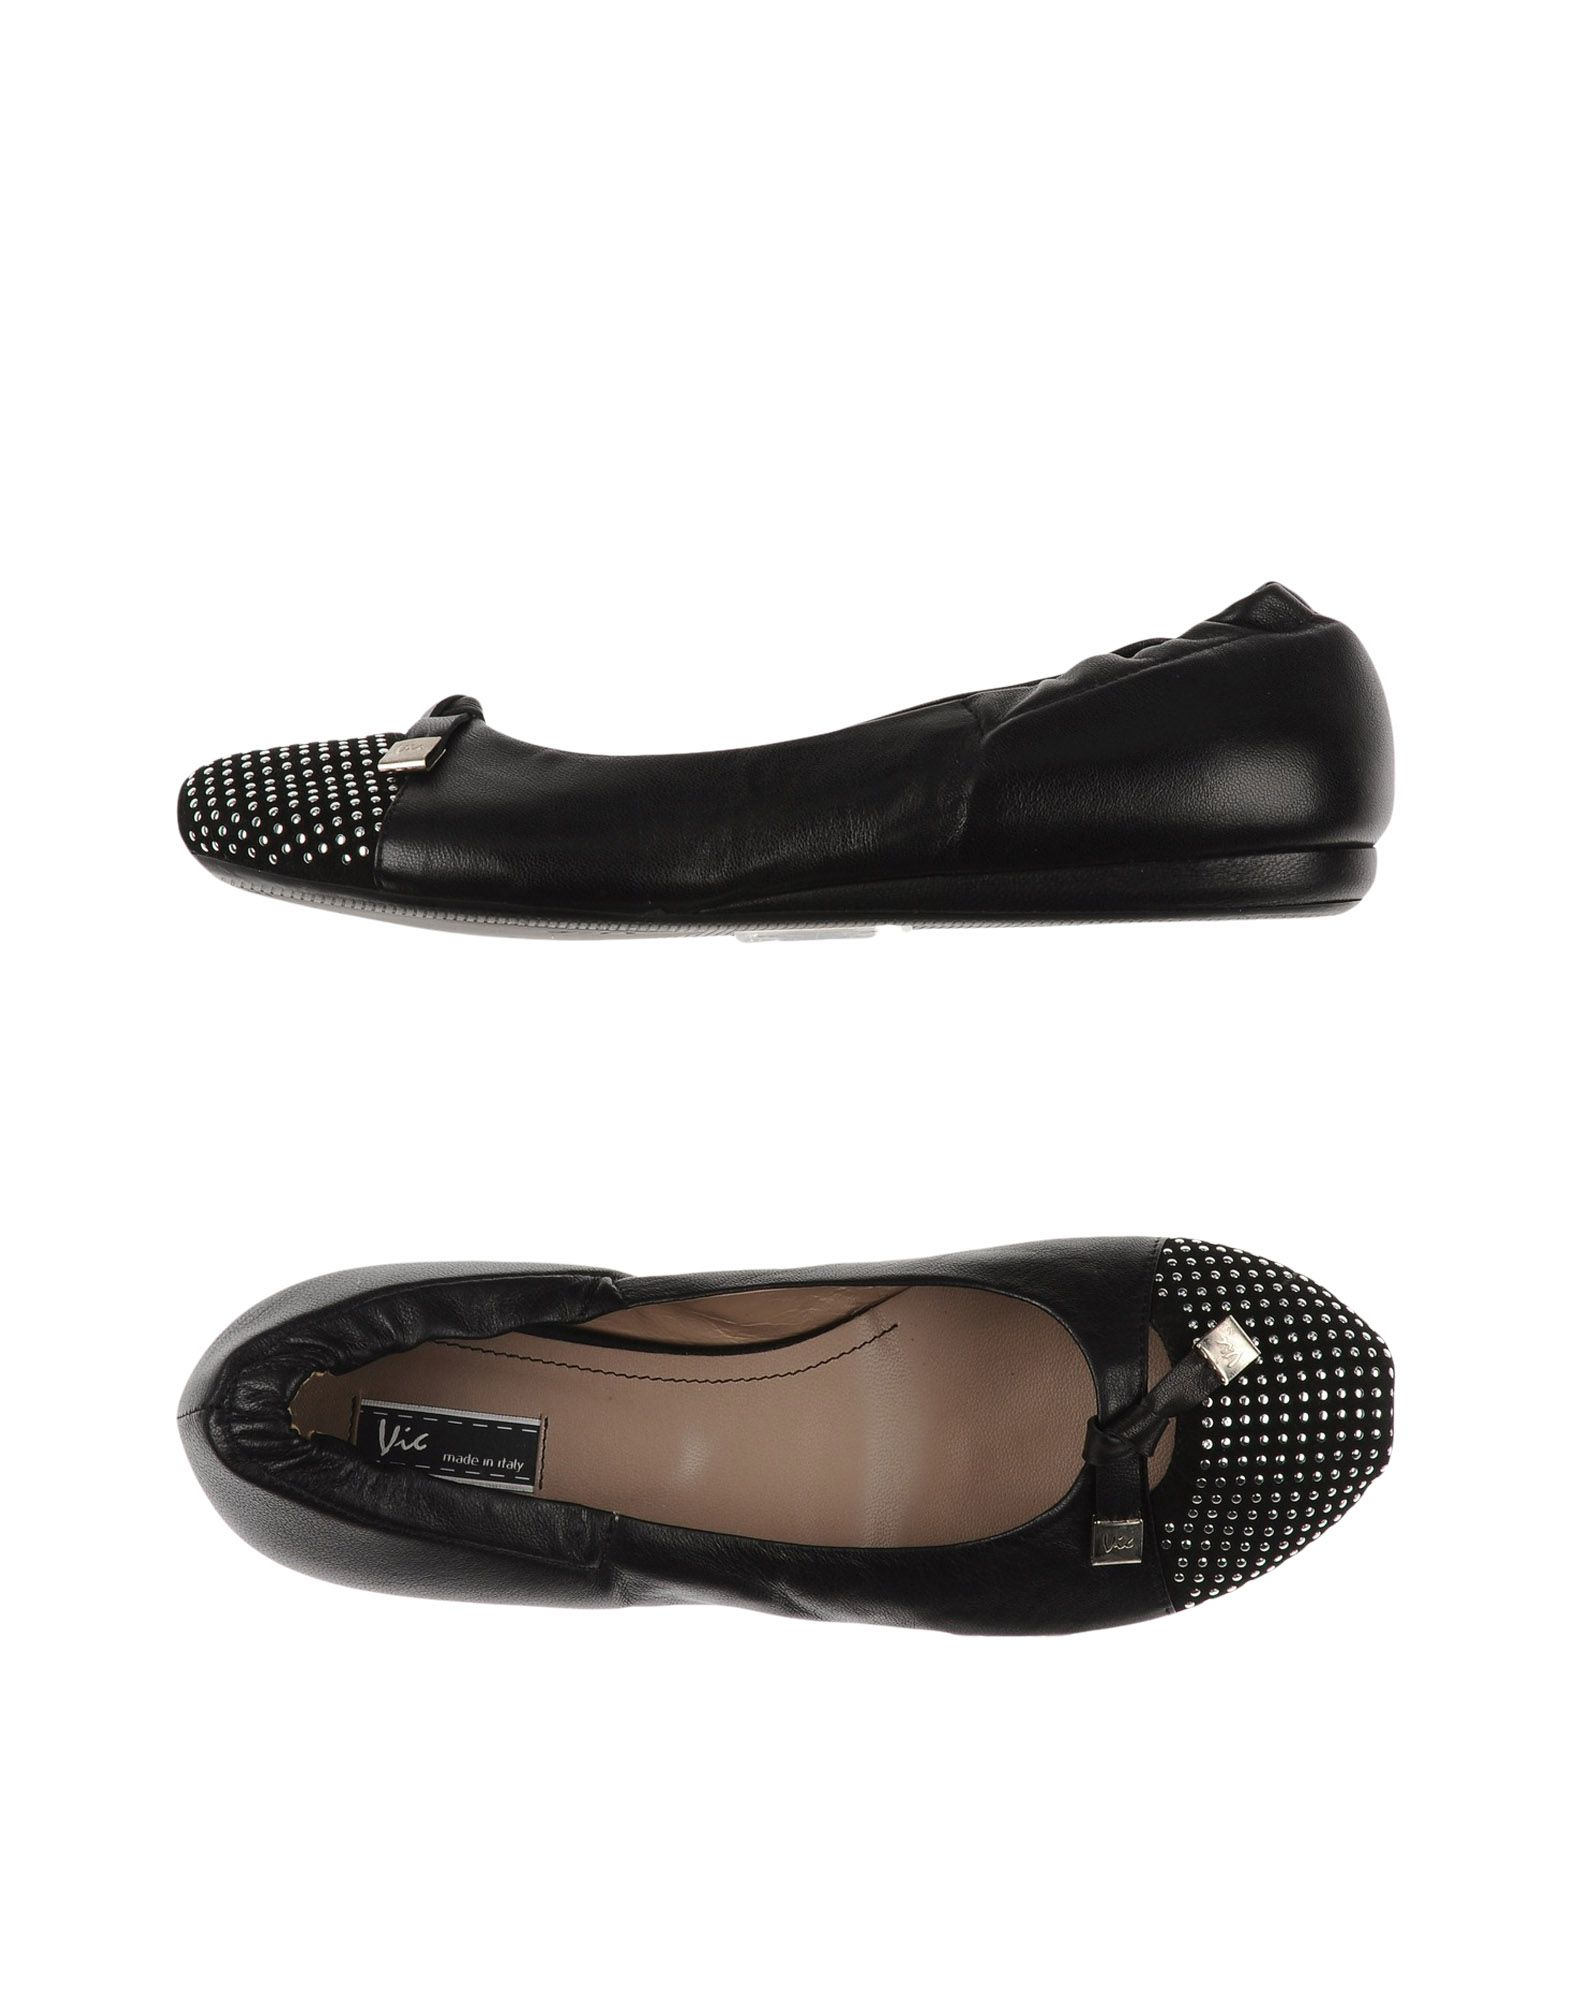 How To Choose Affordable Shoes For That Workplace